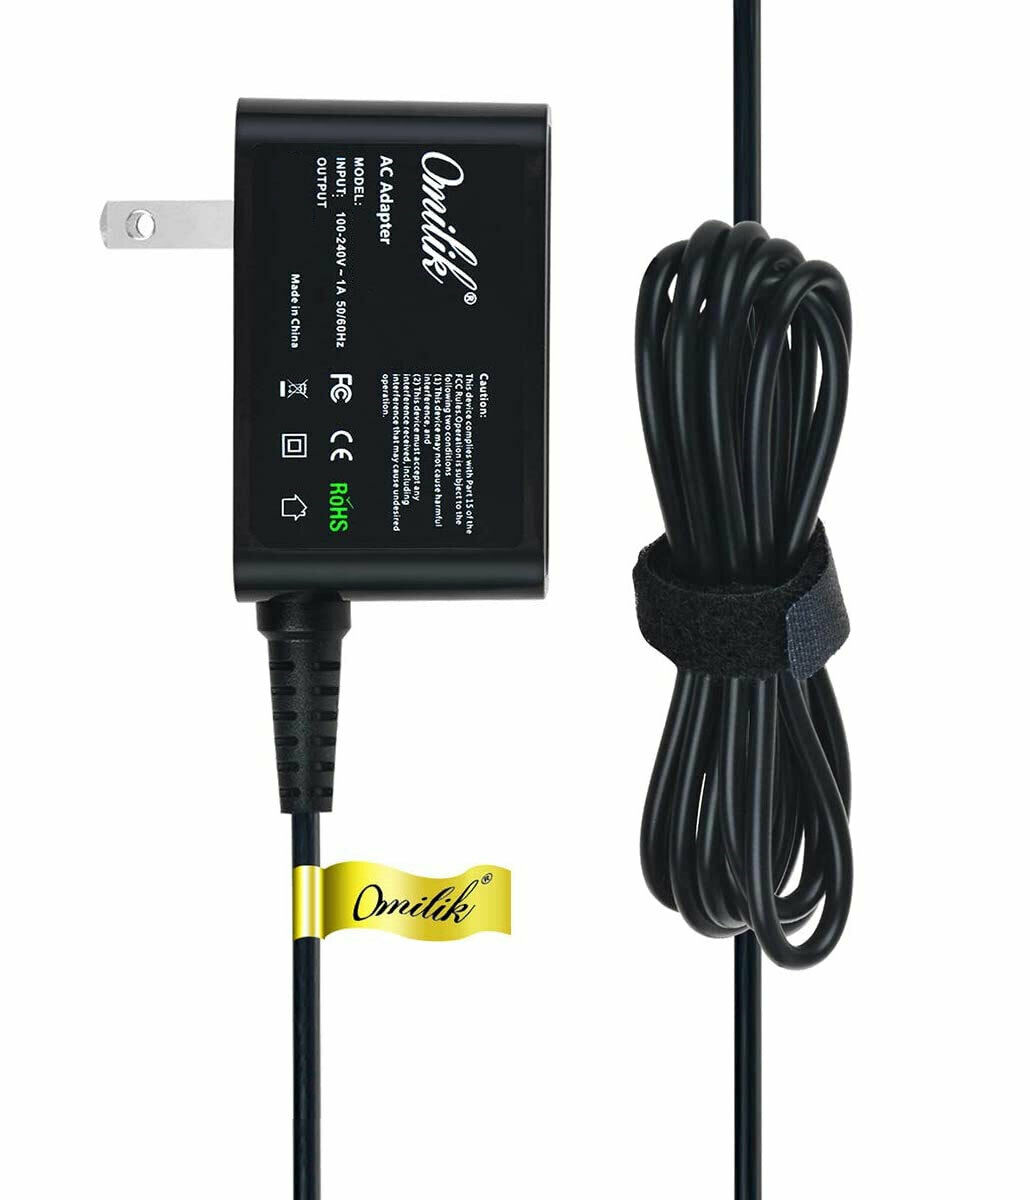 OmiLik 12V Adapter Charger for Briggs & Stratton Power 030477-00 030477-02 Power